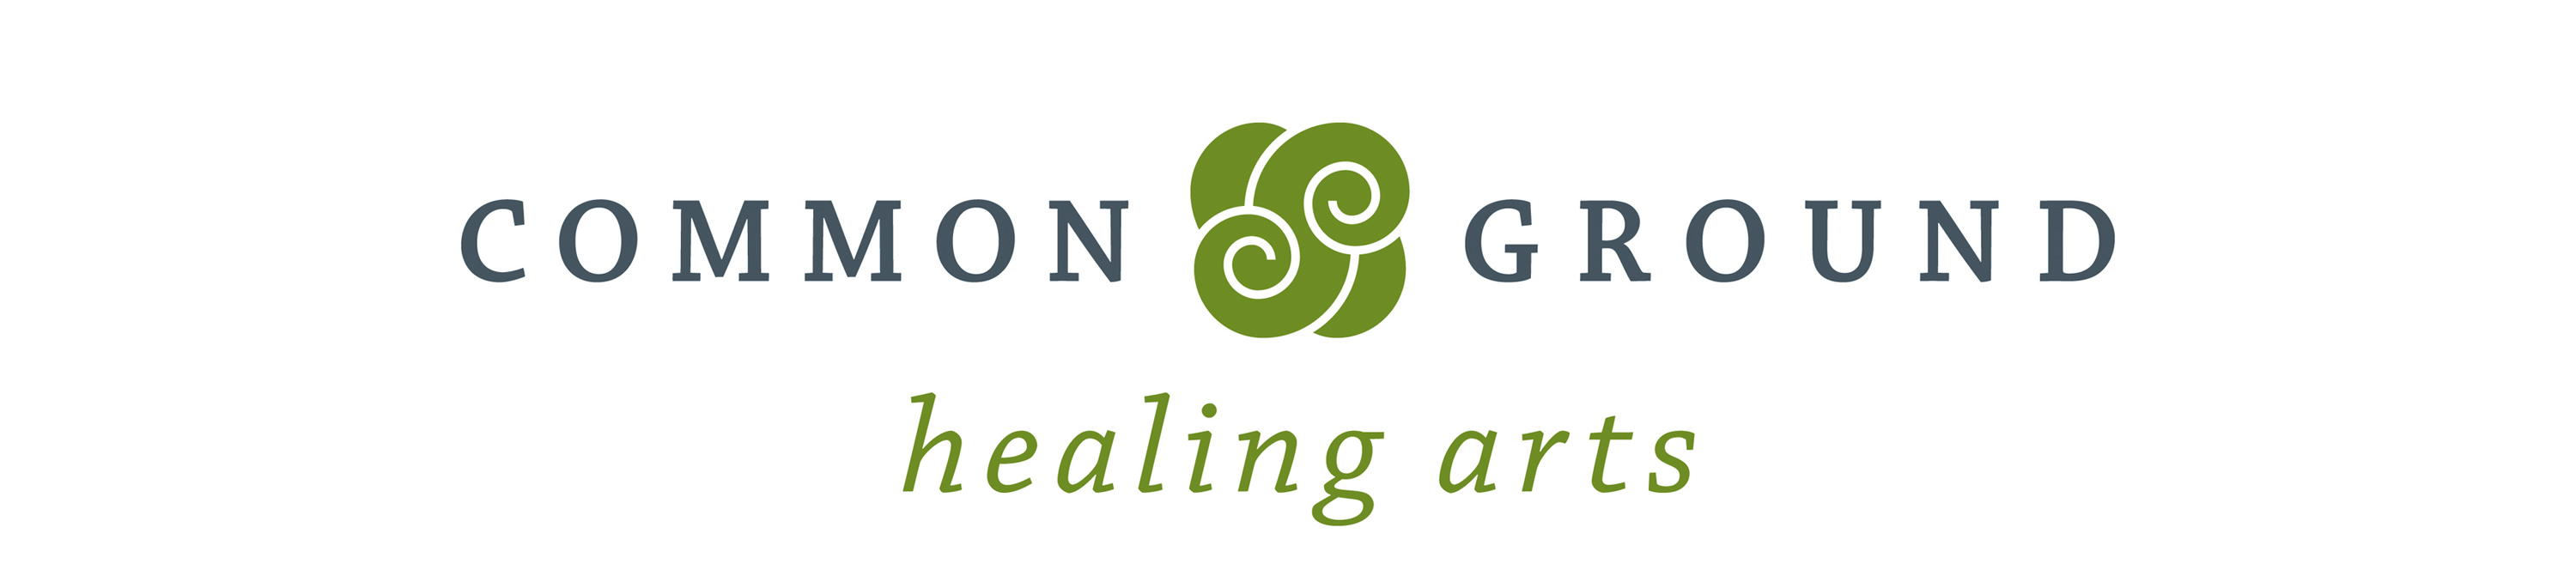 Common Ground Healing Arts